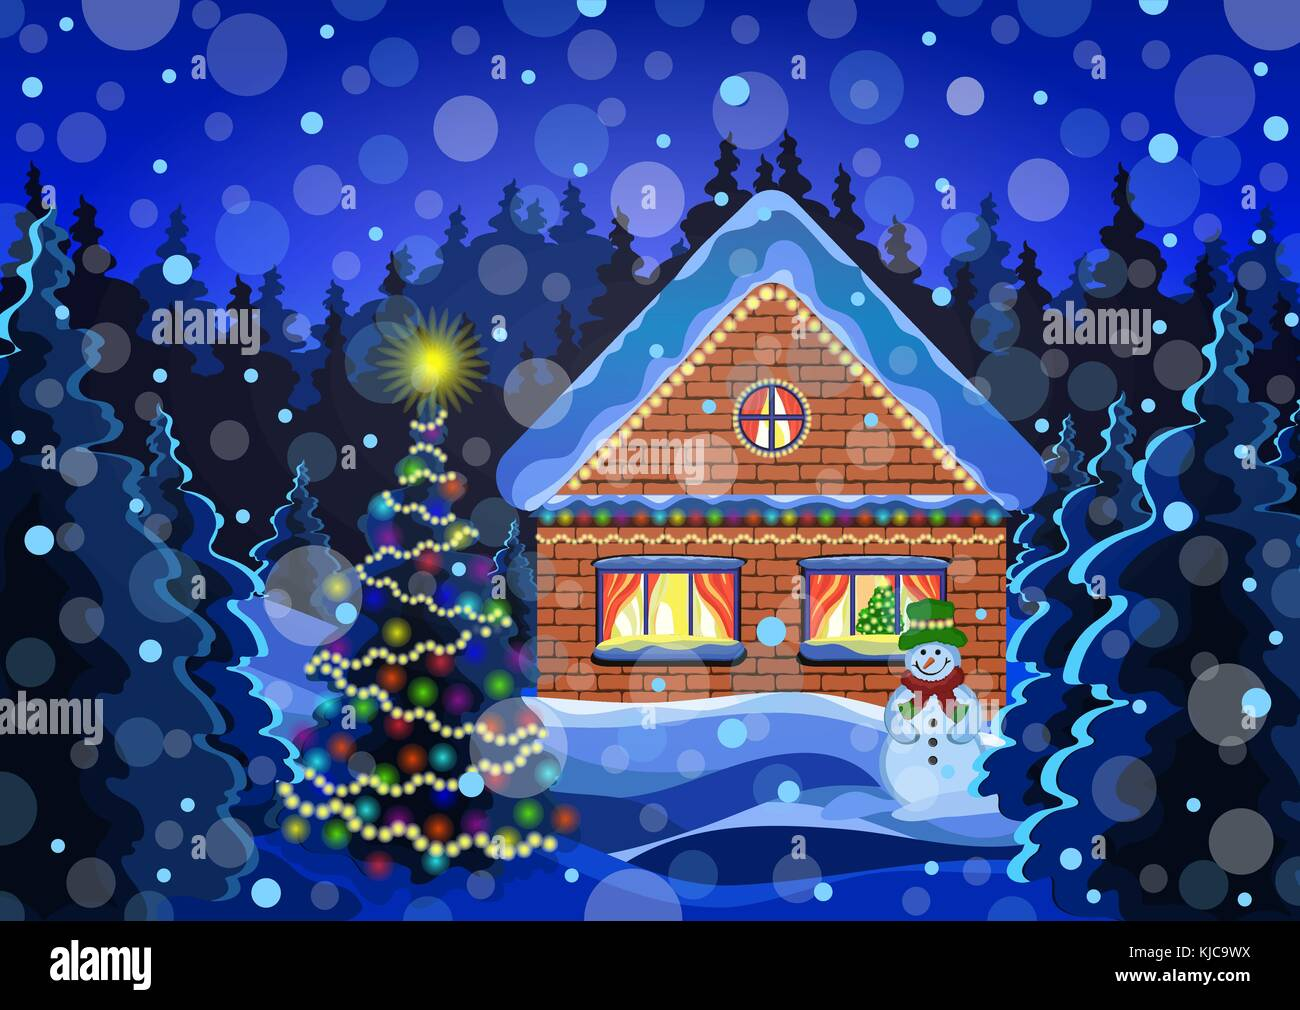 Winter Christmas Landscape Vector Drawing Night Snow Forest With Falling Snowflakes Decorated Luminous Garlands Rustic Brick House